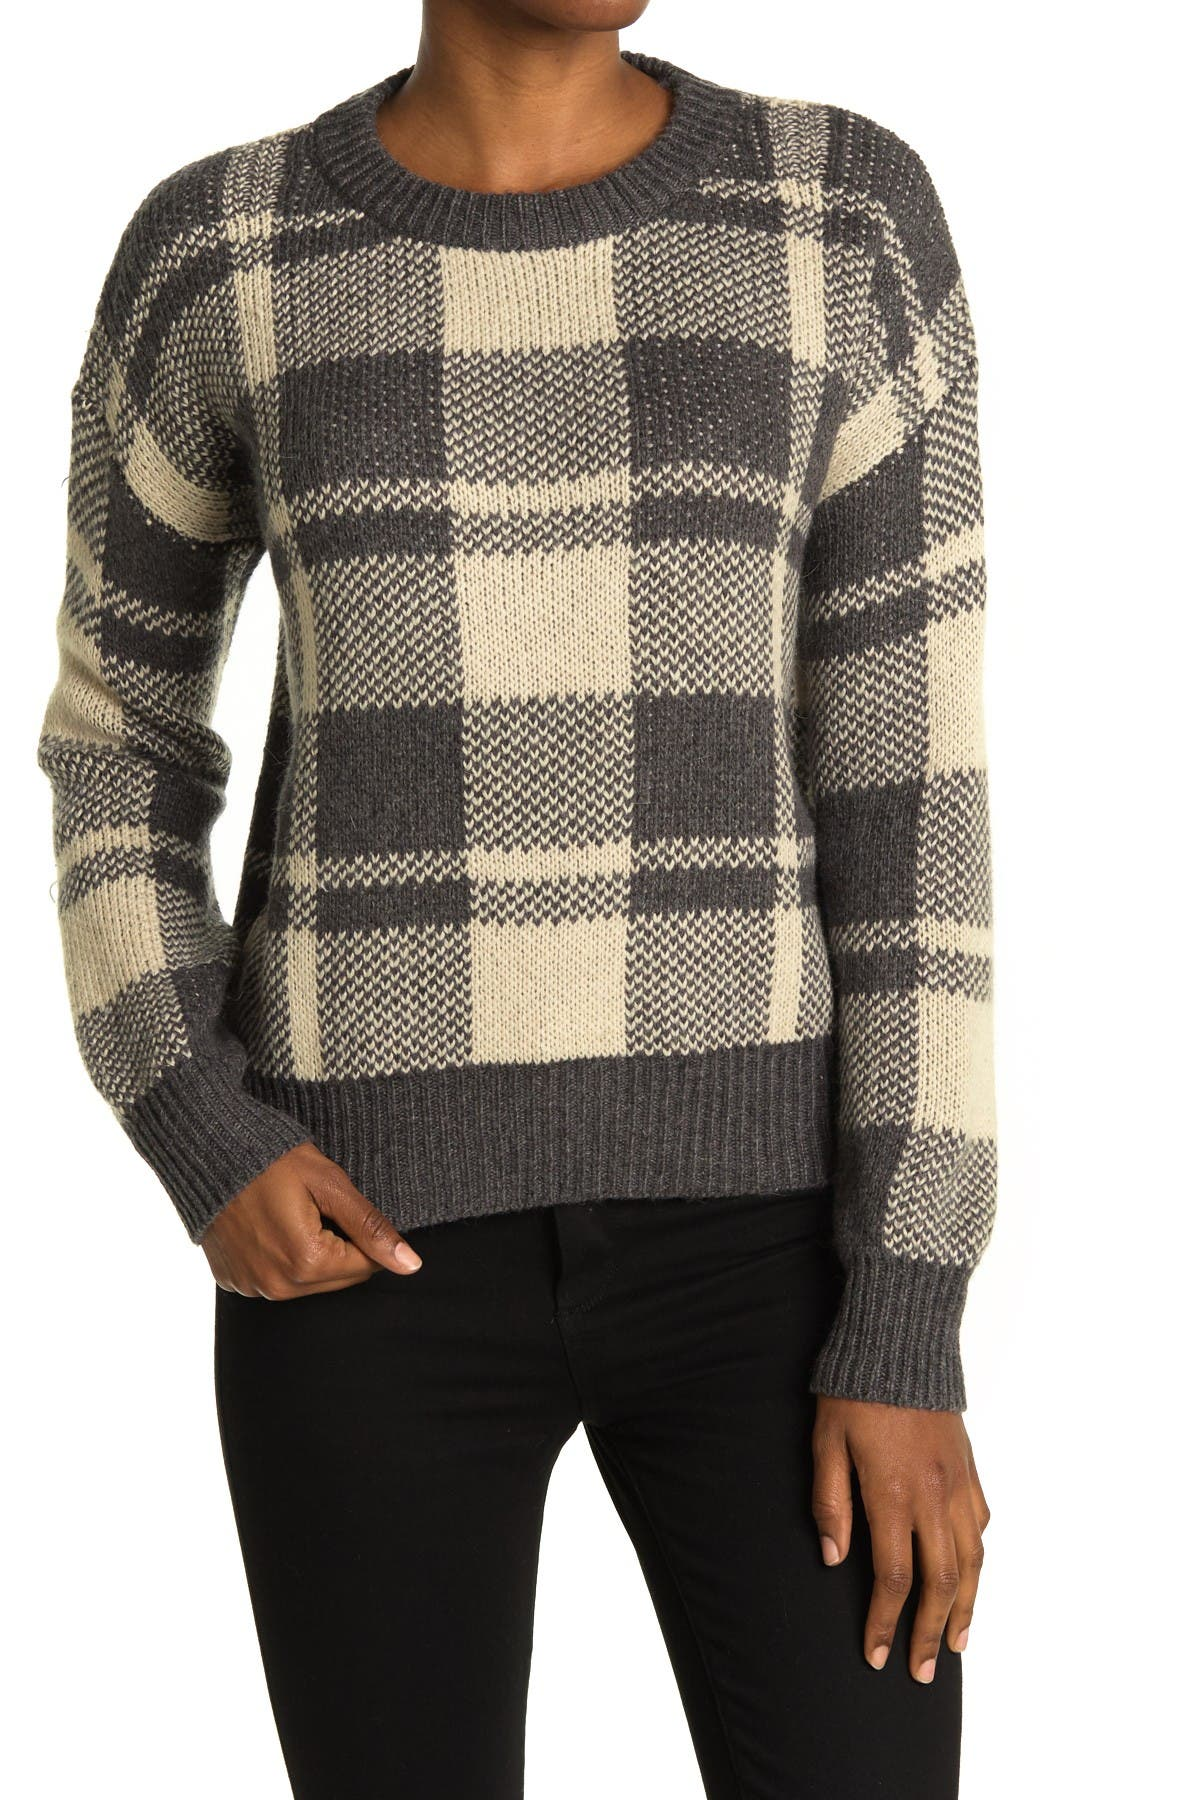 Image of Heartloom Plaid Knit Sweater